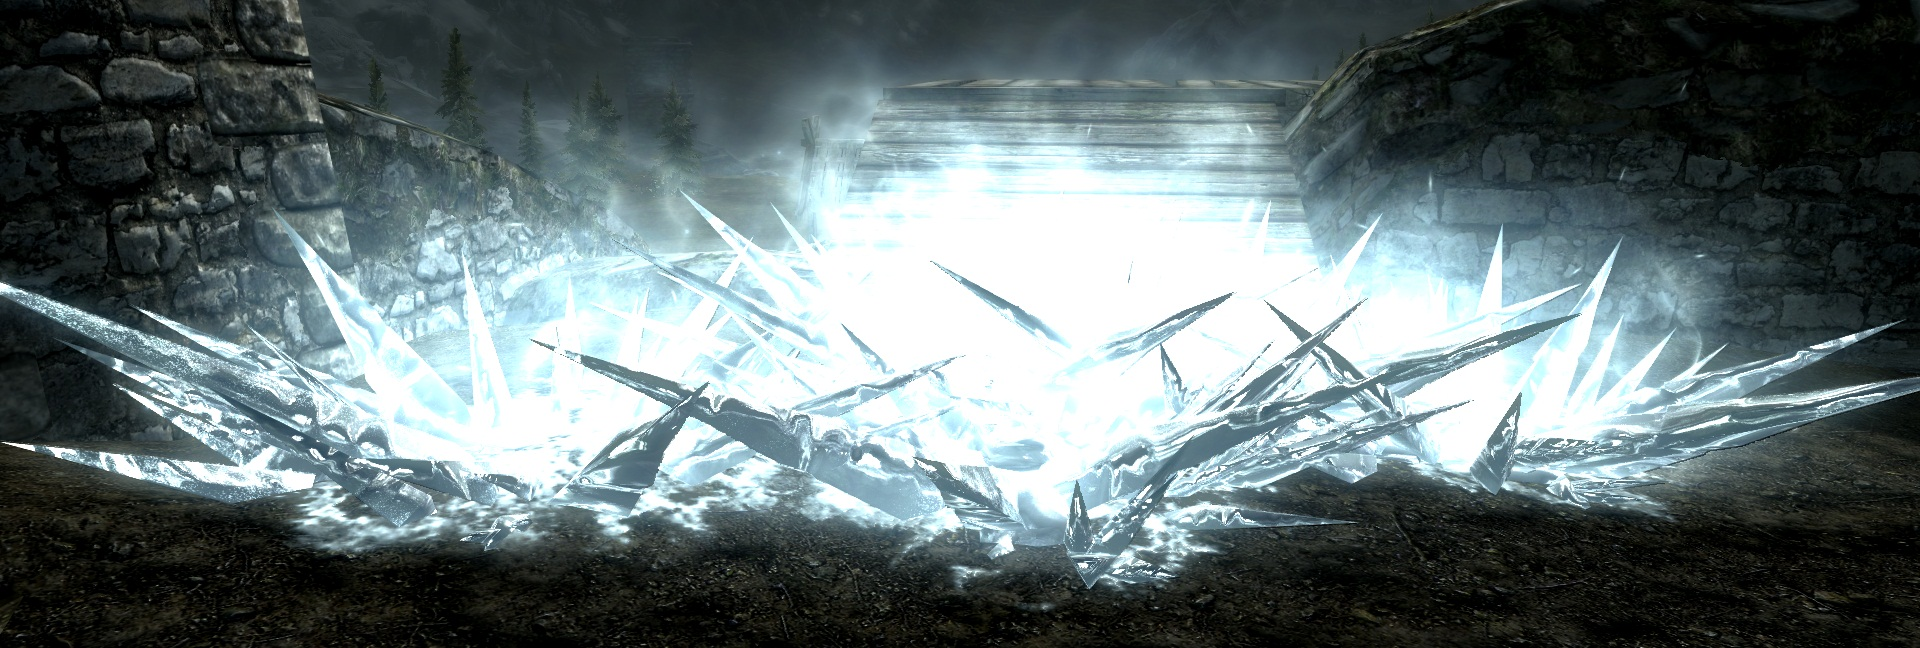 skyrim how to get ice spell